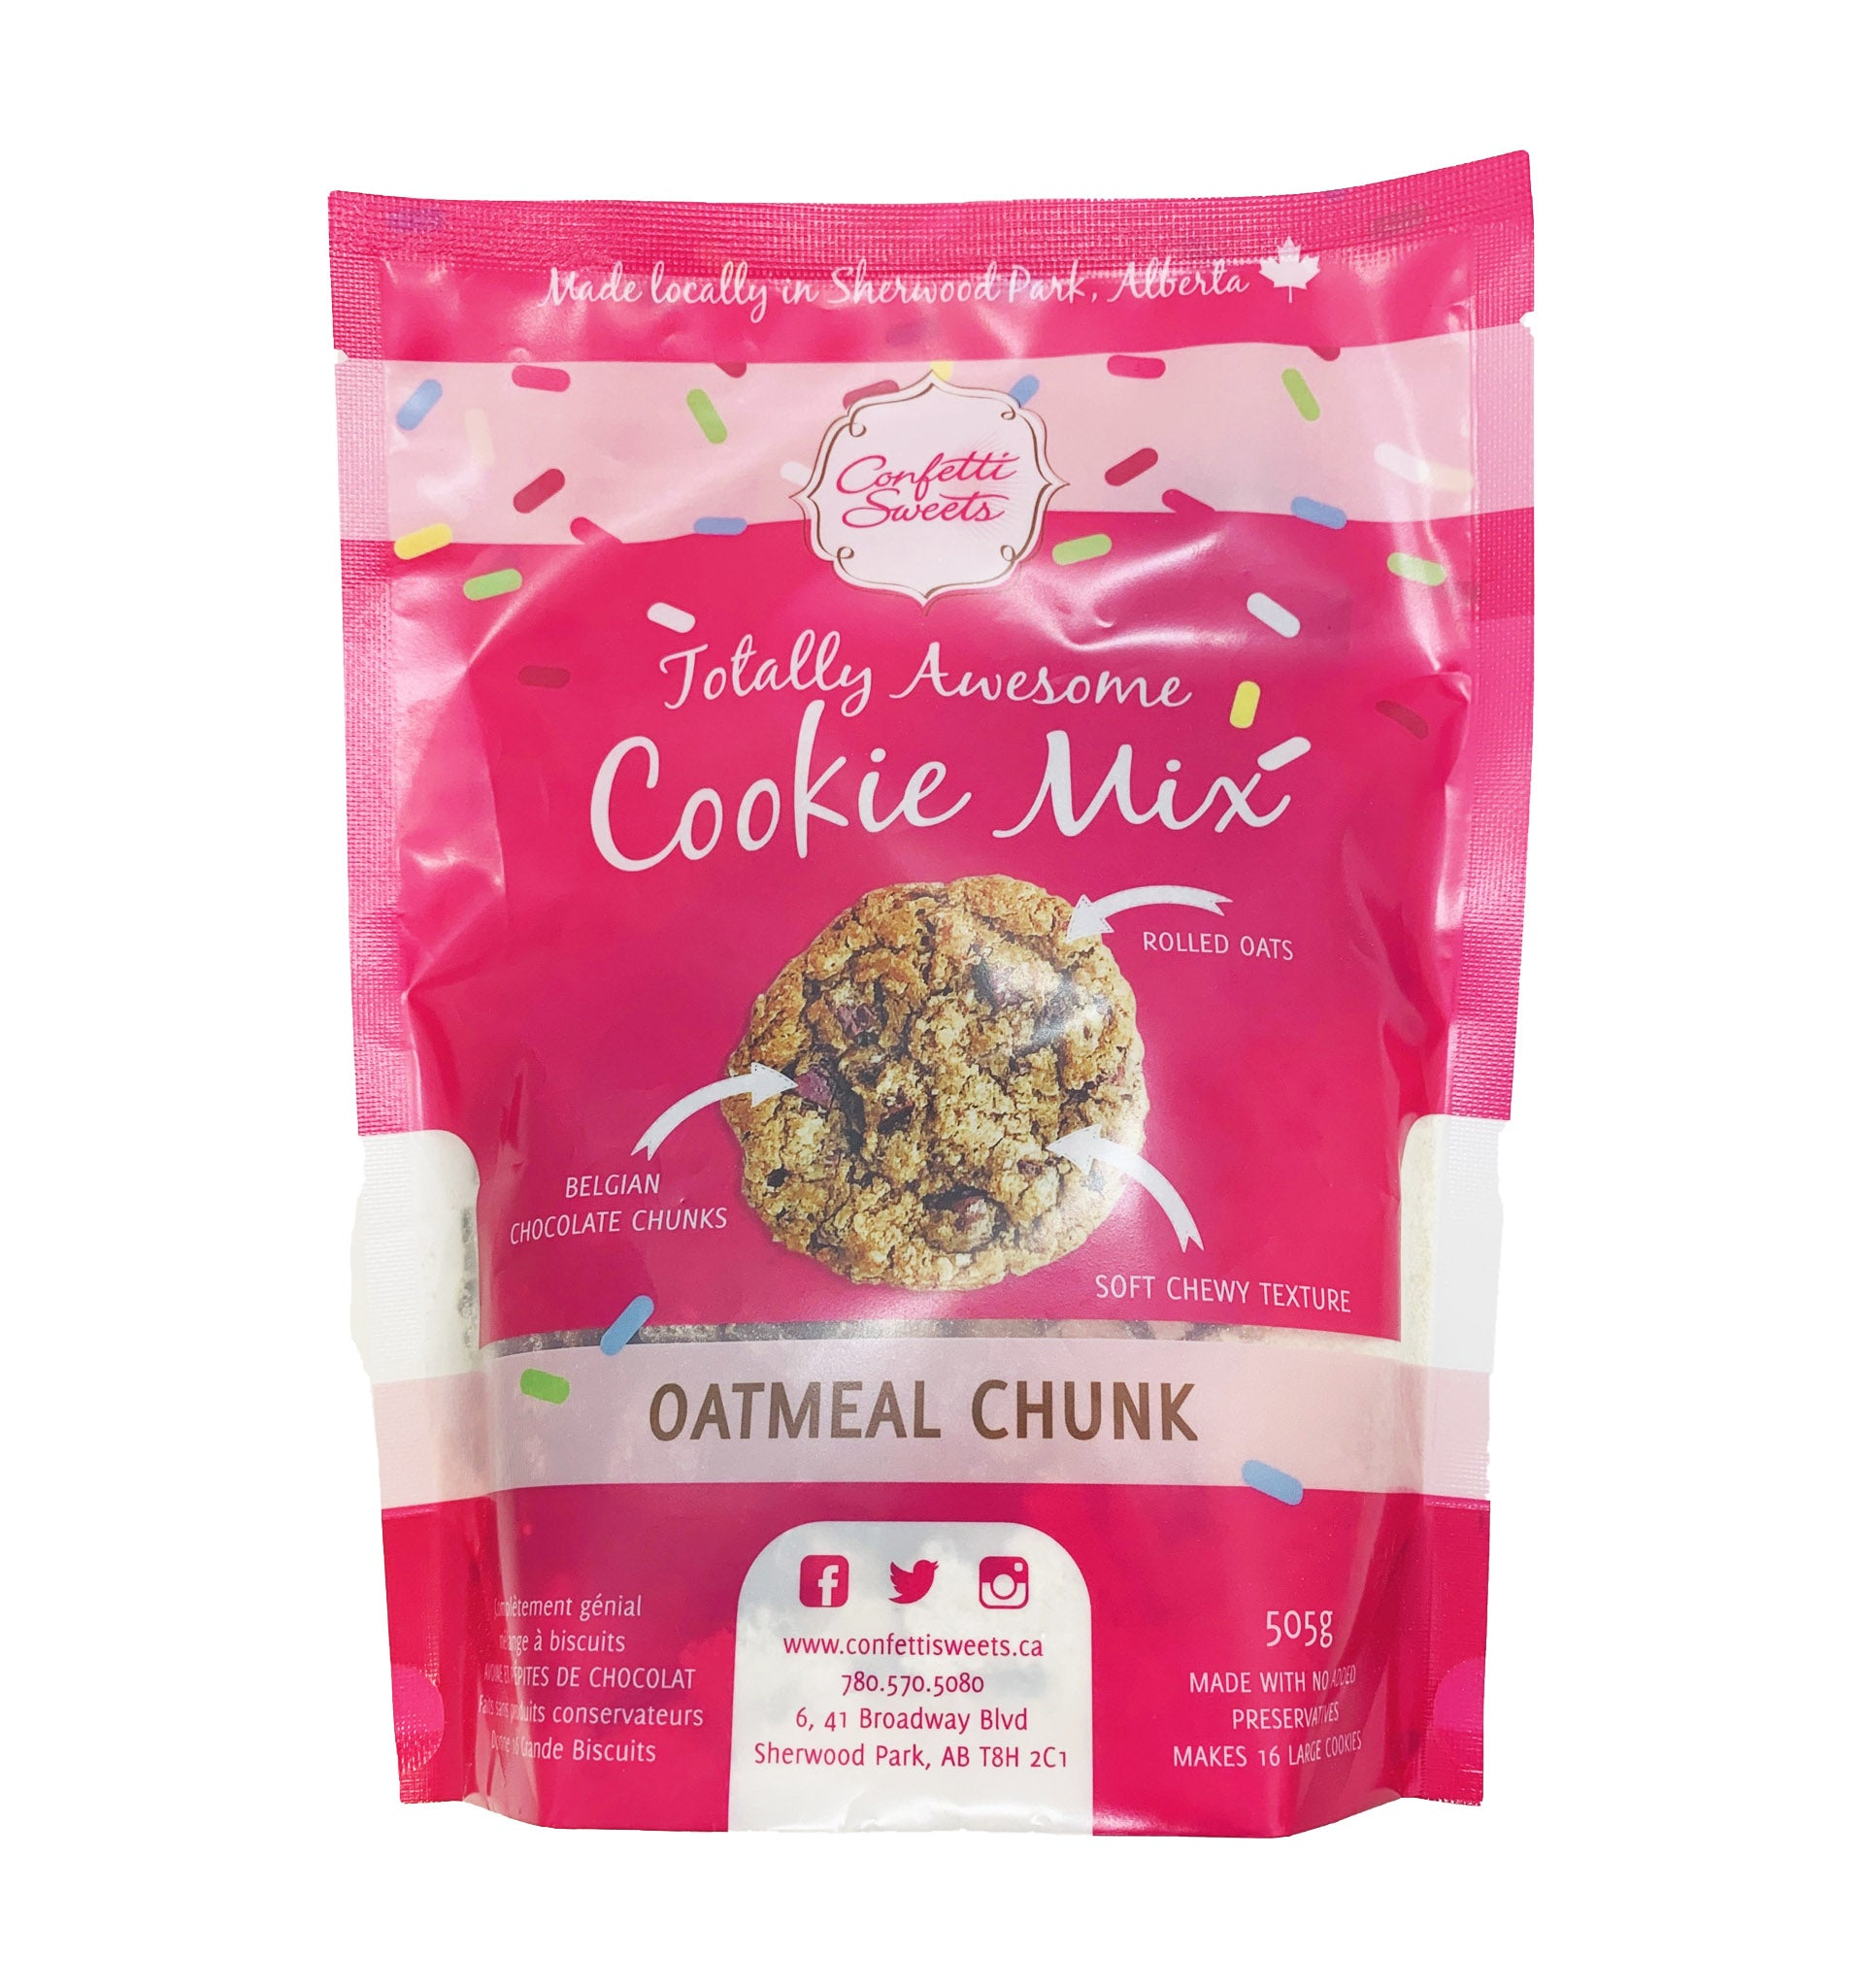 Image of Cookie mix, Oatmeal Chunk. (bakes 16 large cookies)